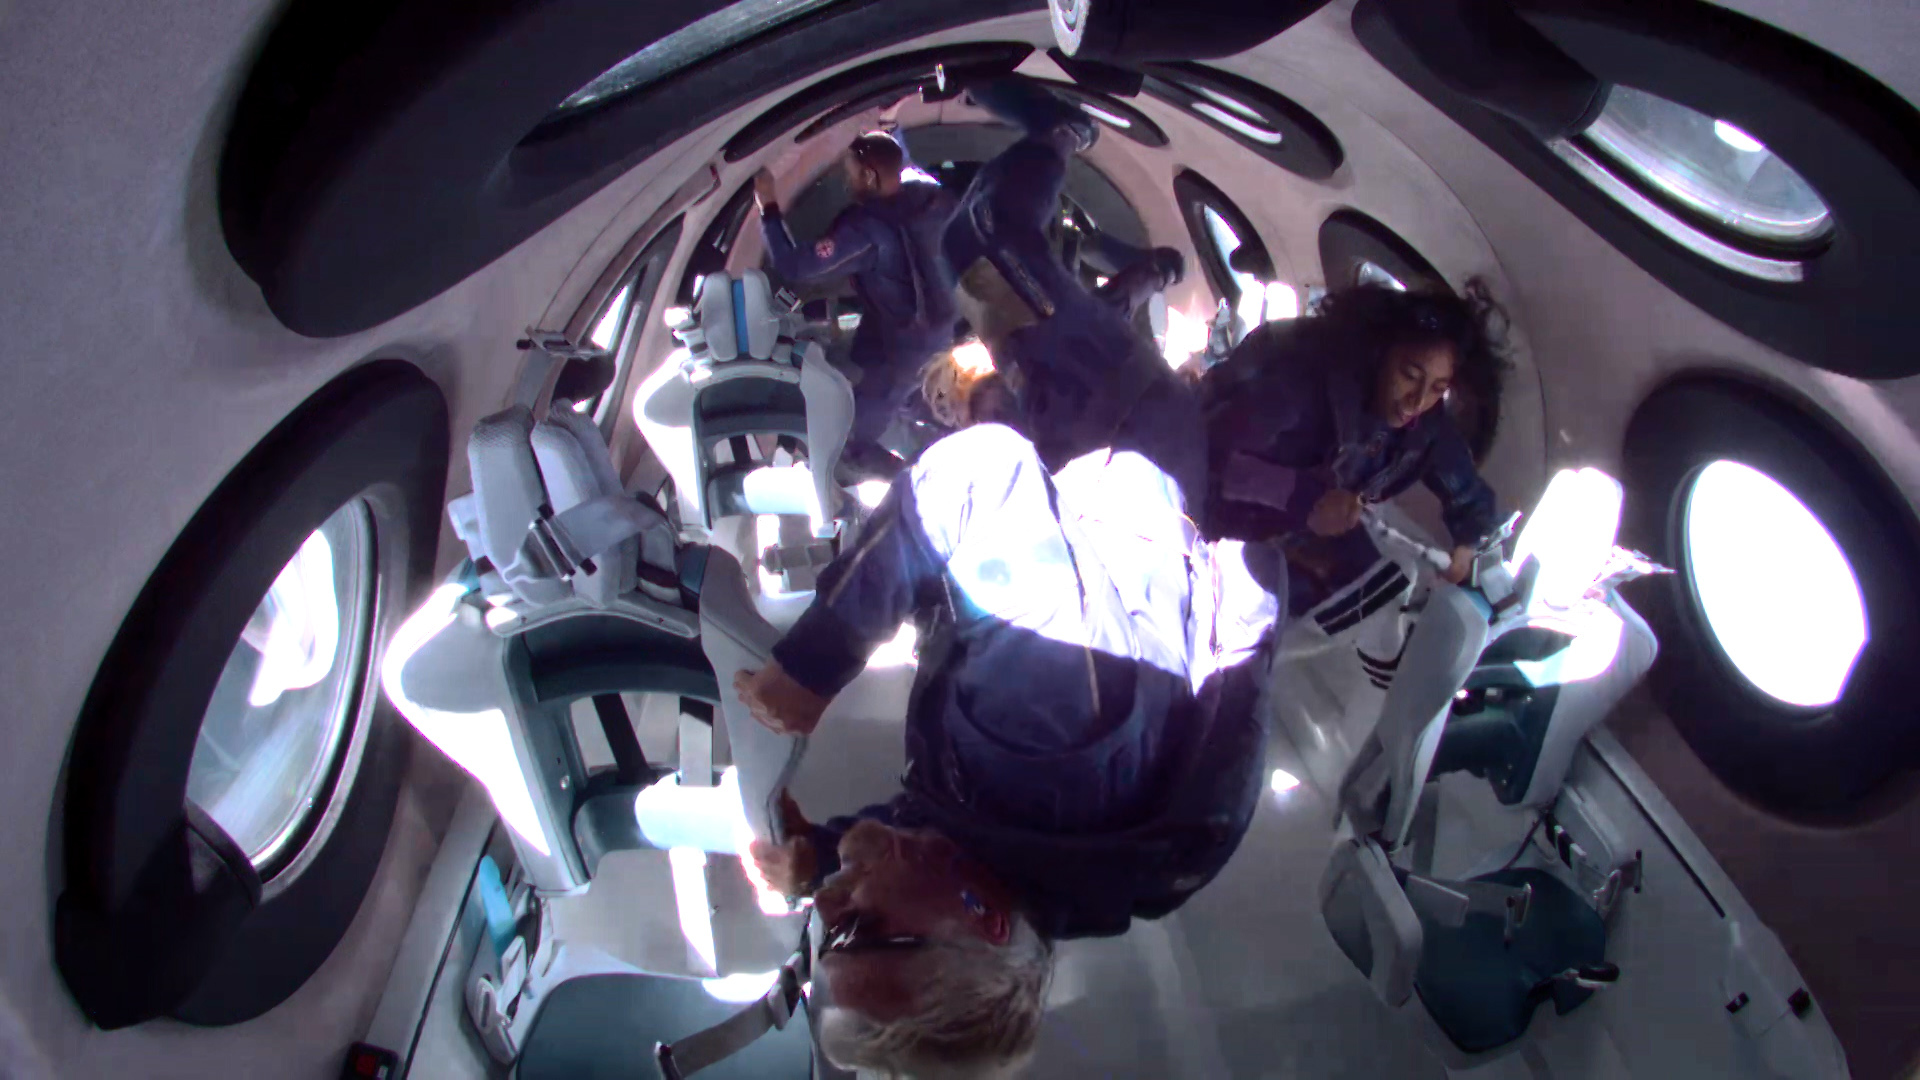 NEW MEXICO, USA - JULY 11: Sir Richard Branson flew into space aboard a Virgin Galactic vessel, a voyage he described as the